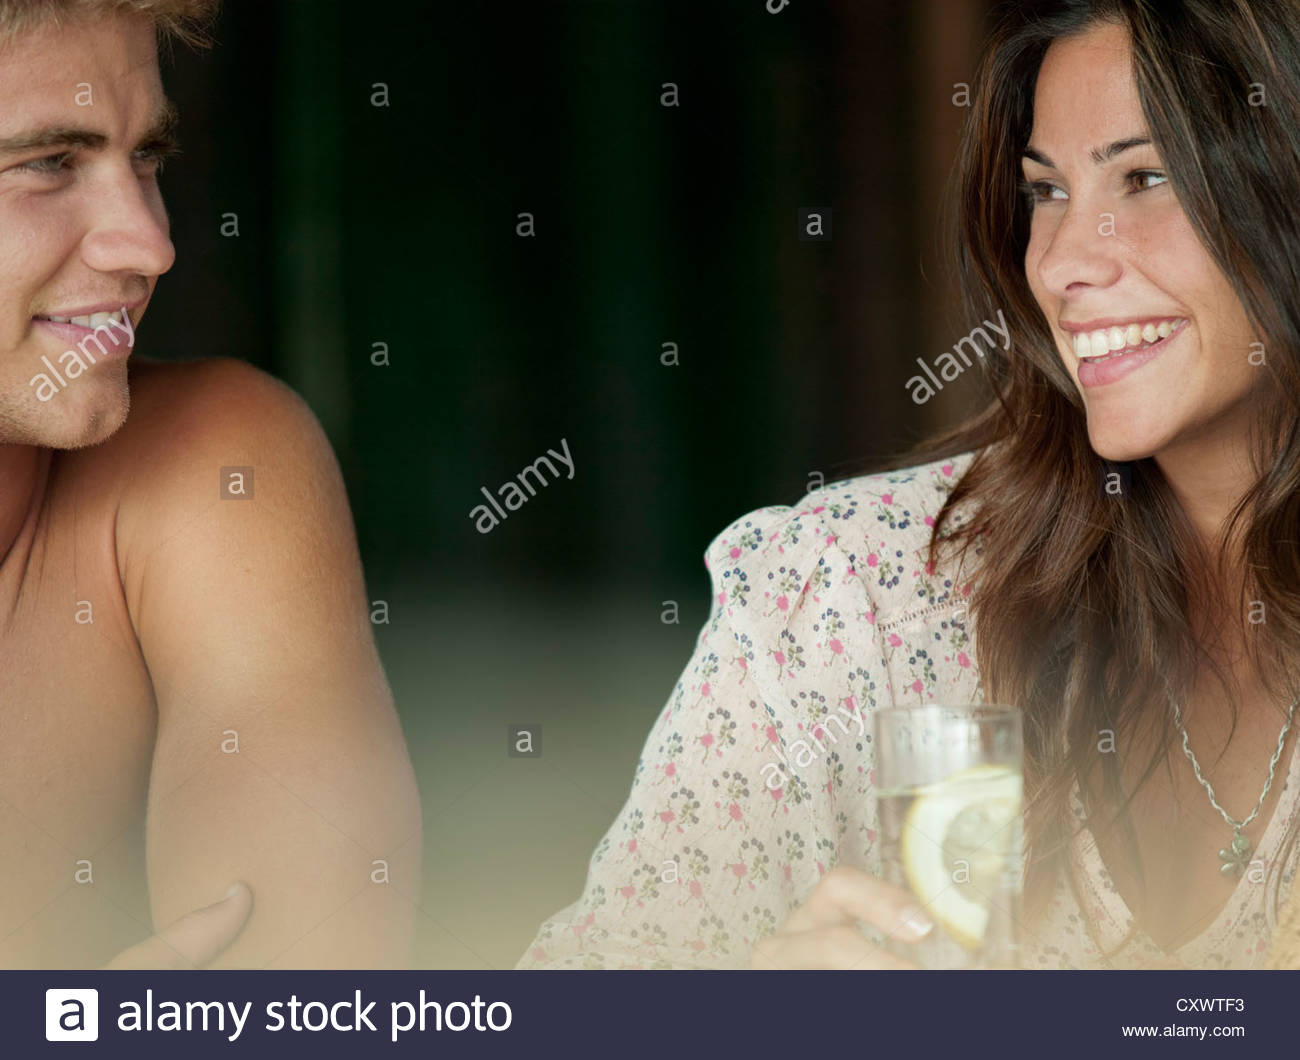 Couple laughing at each other - Stock Image